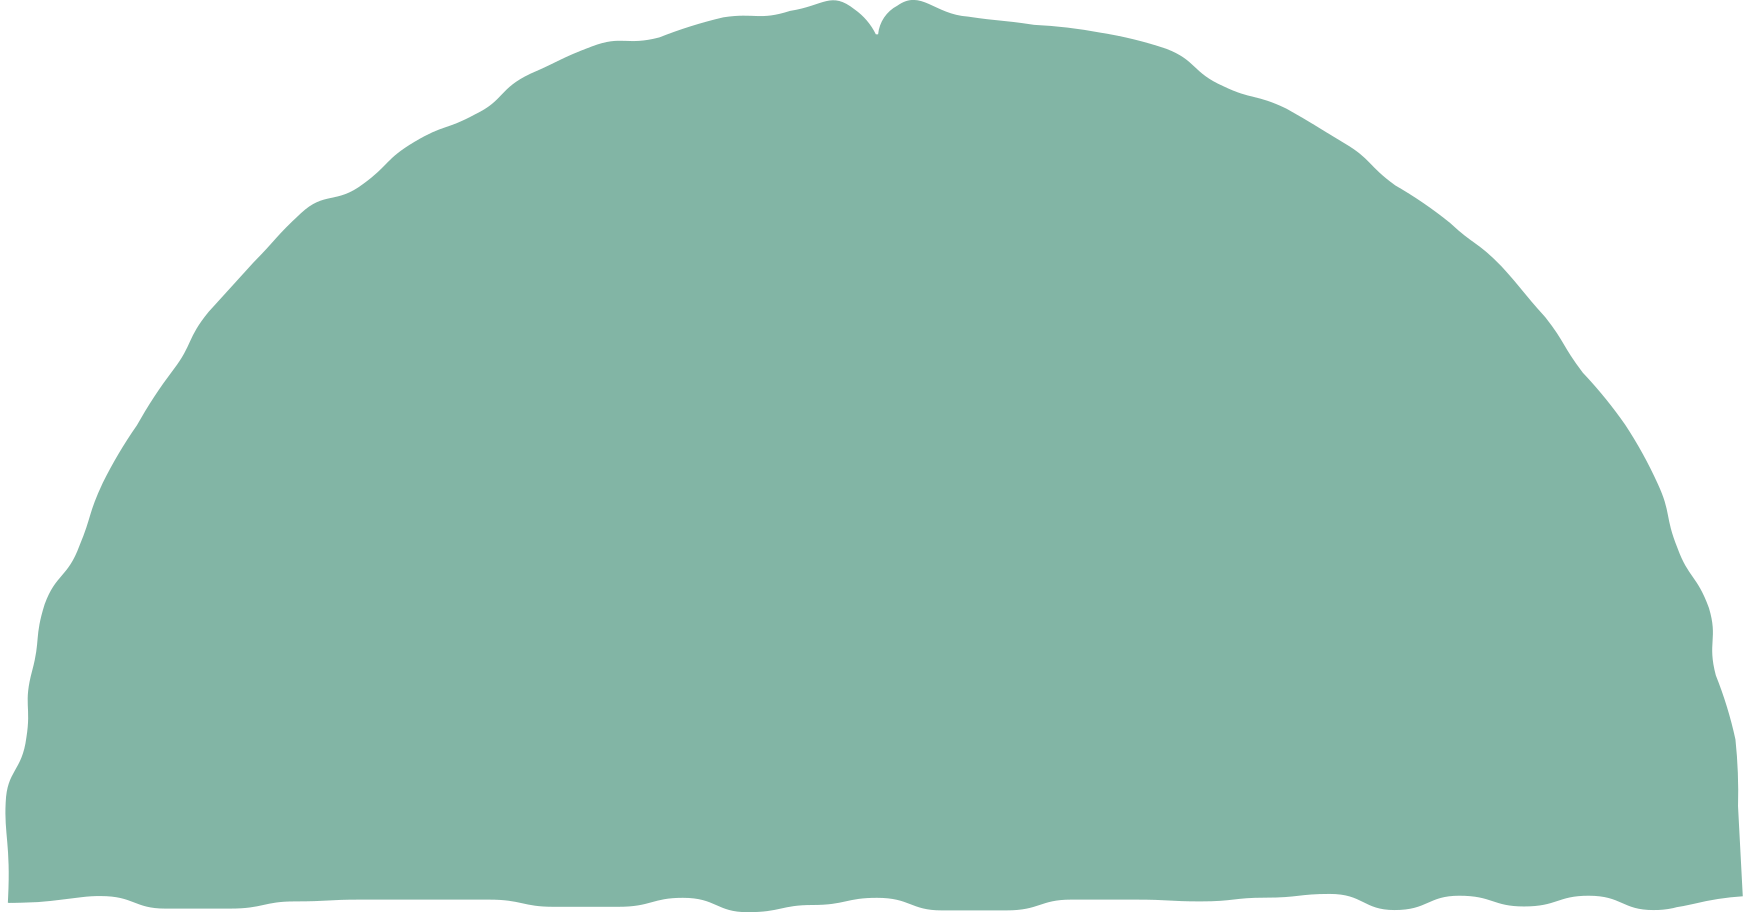 style semicircle green Vector images in PNG and SVG   Icons8 Illustrations